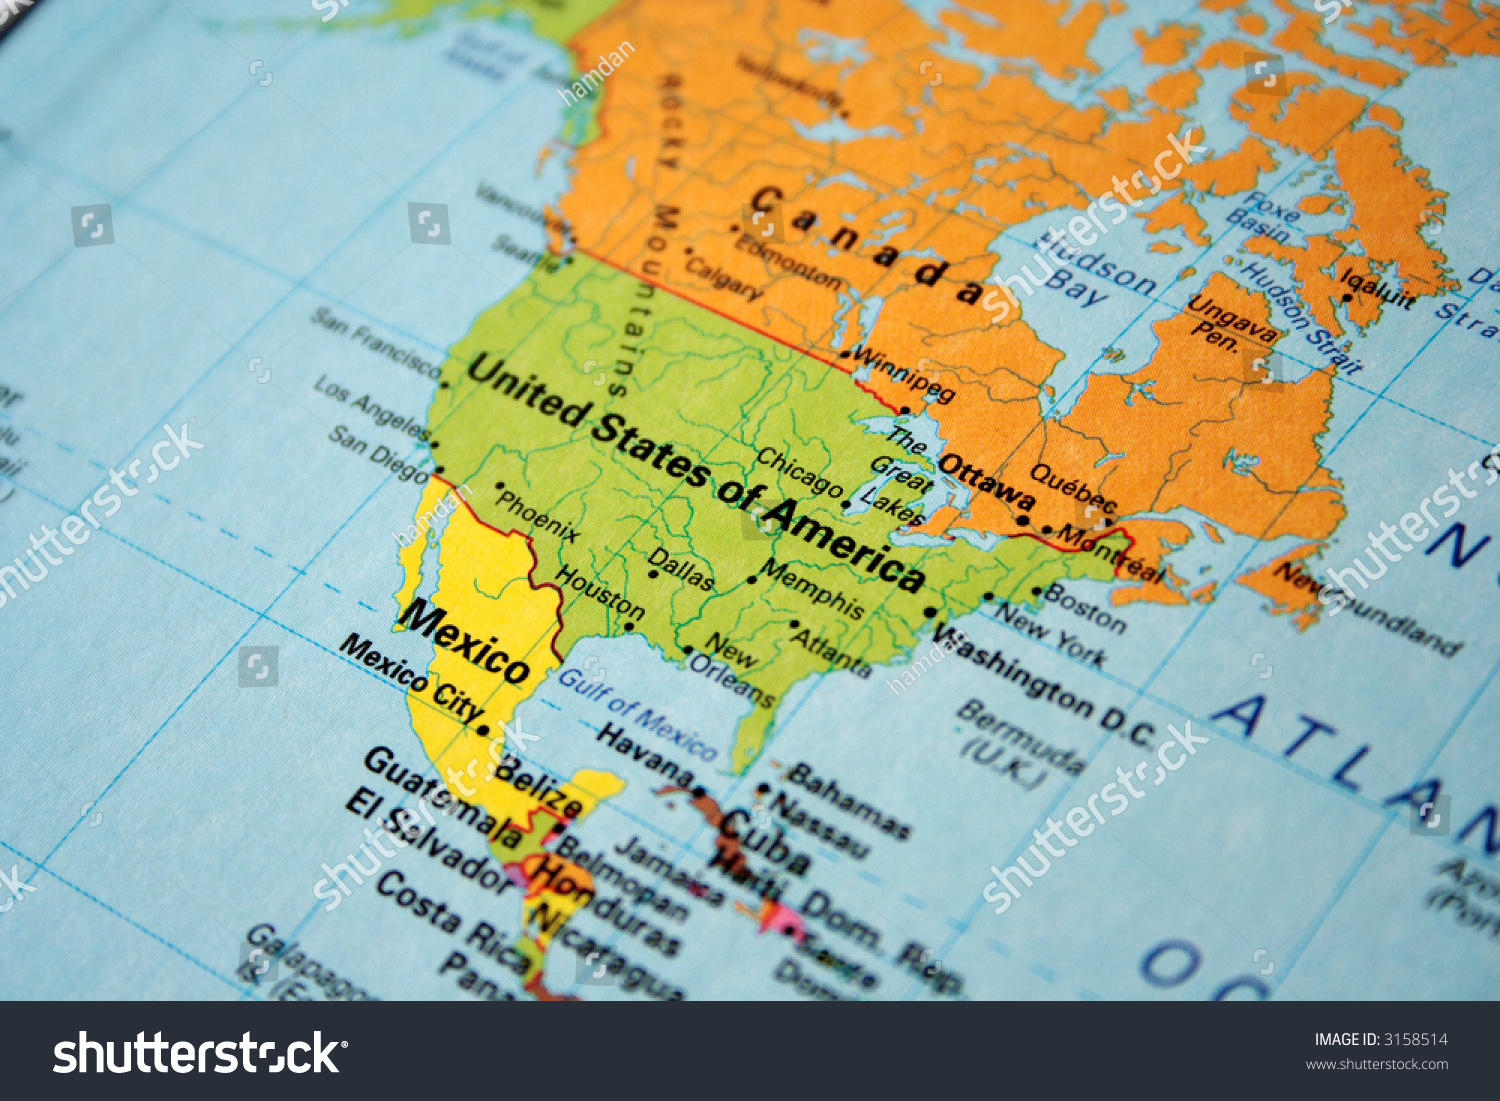 Map Usa Canada Stock Photo  Shutterstock - Map of boston in usa